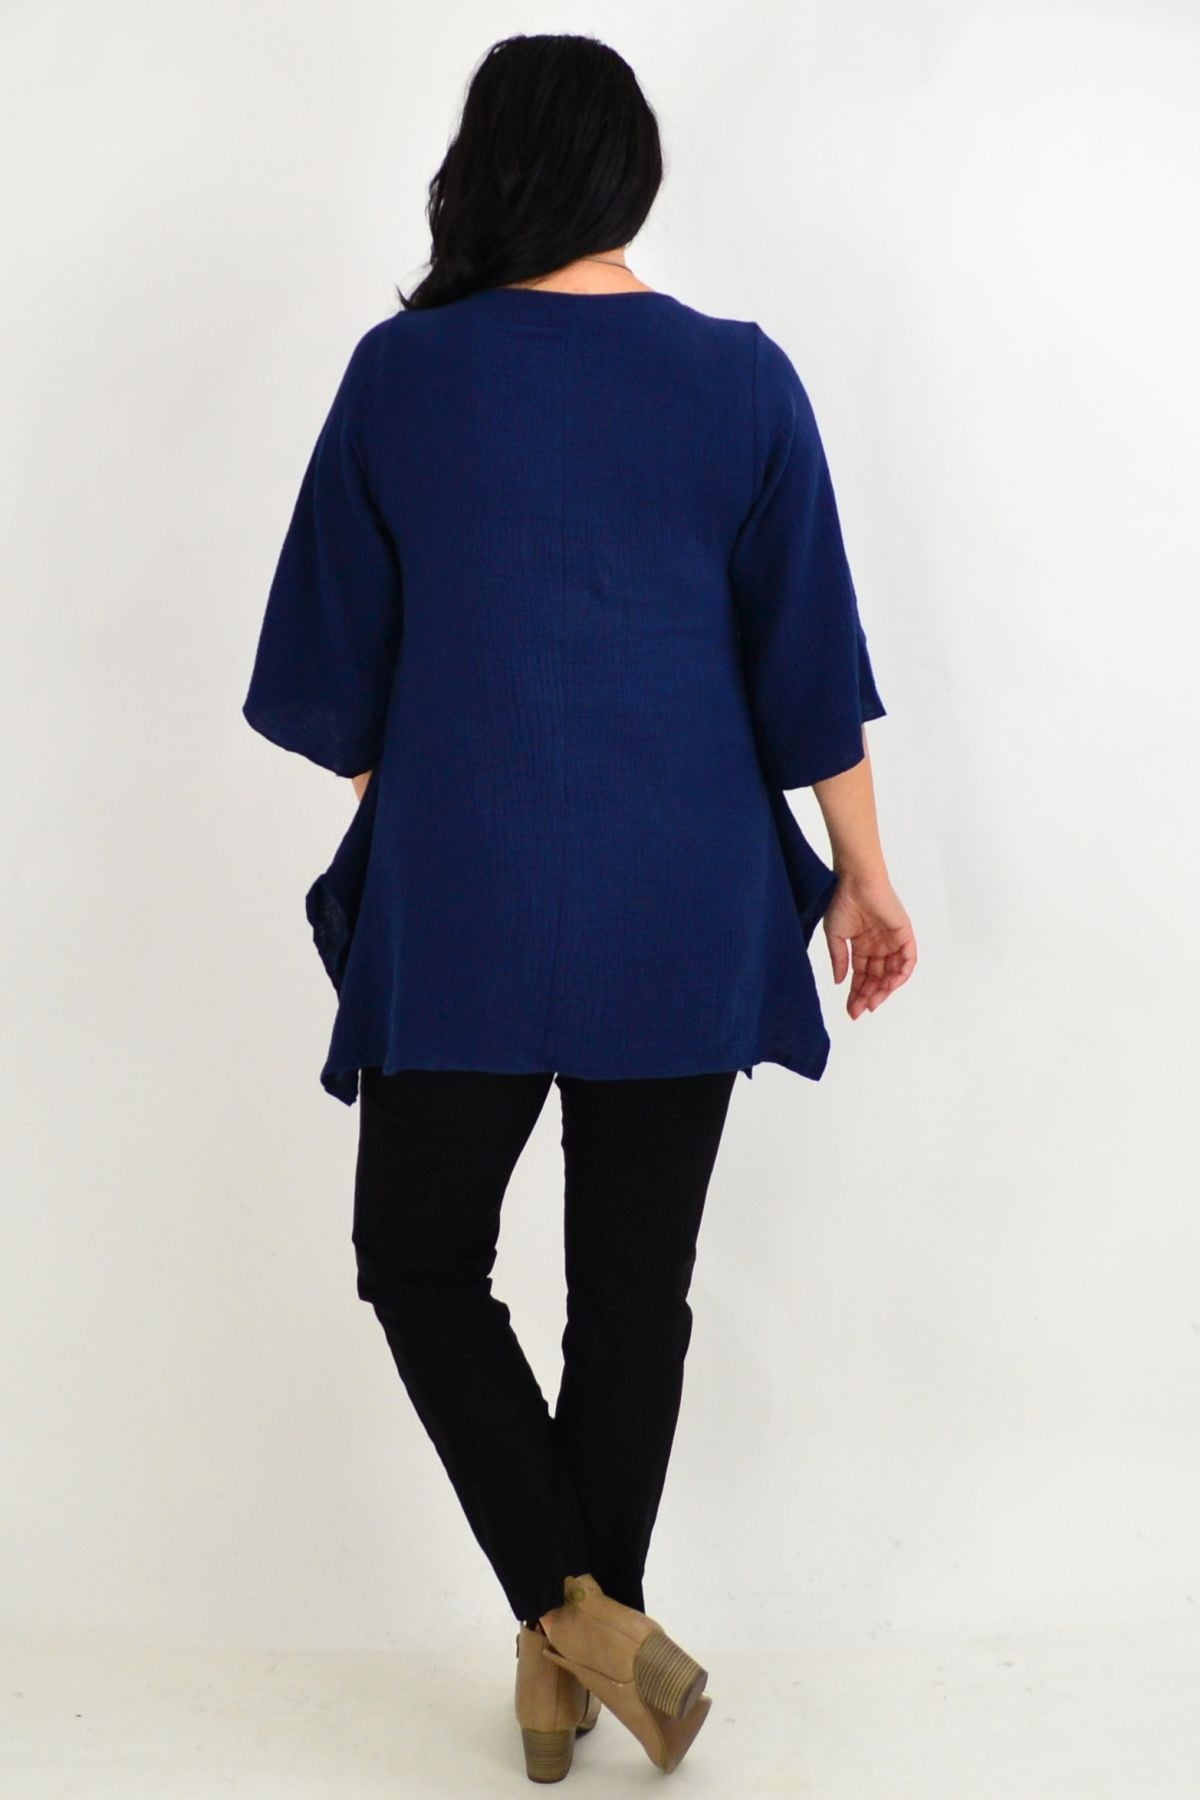 Navy Blue Cotton Pocket Tunic Top | I Love Tunics | Tunic Tops | Tunic | Tunic Dresses  | womens clothing online